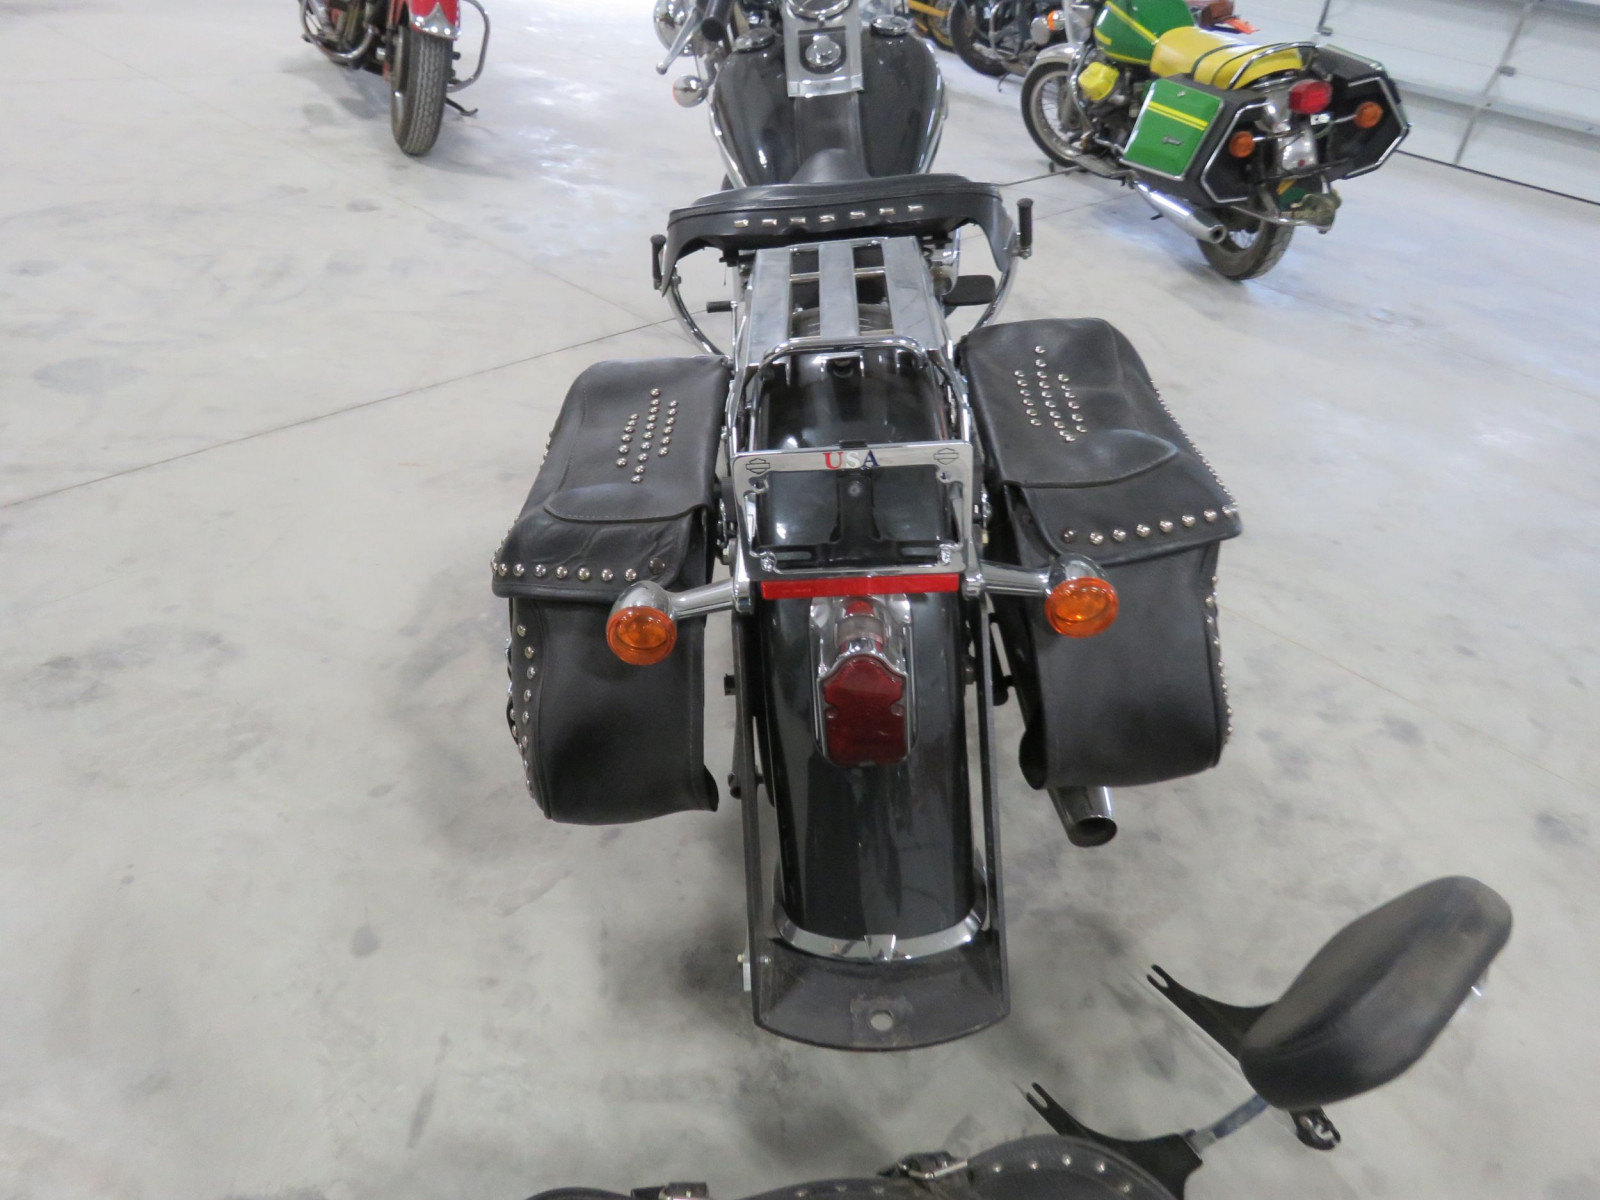 2005 Harley Davidson Custom Soft tail Motorcycle - Image 2